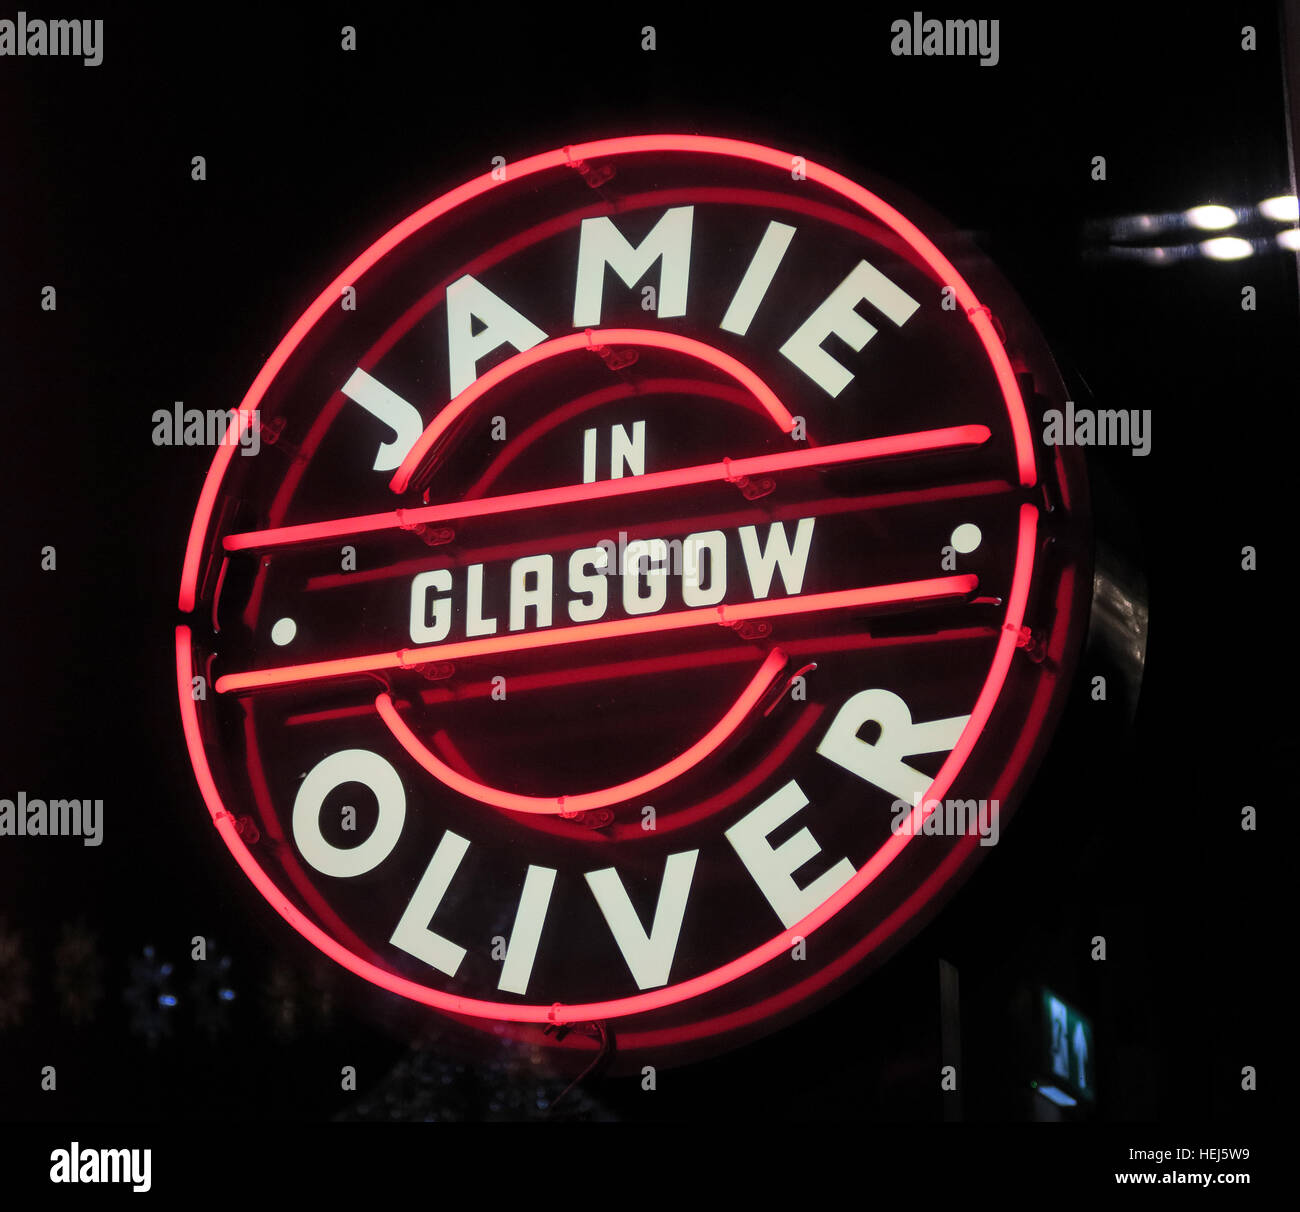 Jamie Oliver in Glasgow neon sign, Scotland, UK Stock Photo